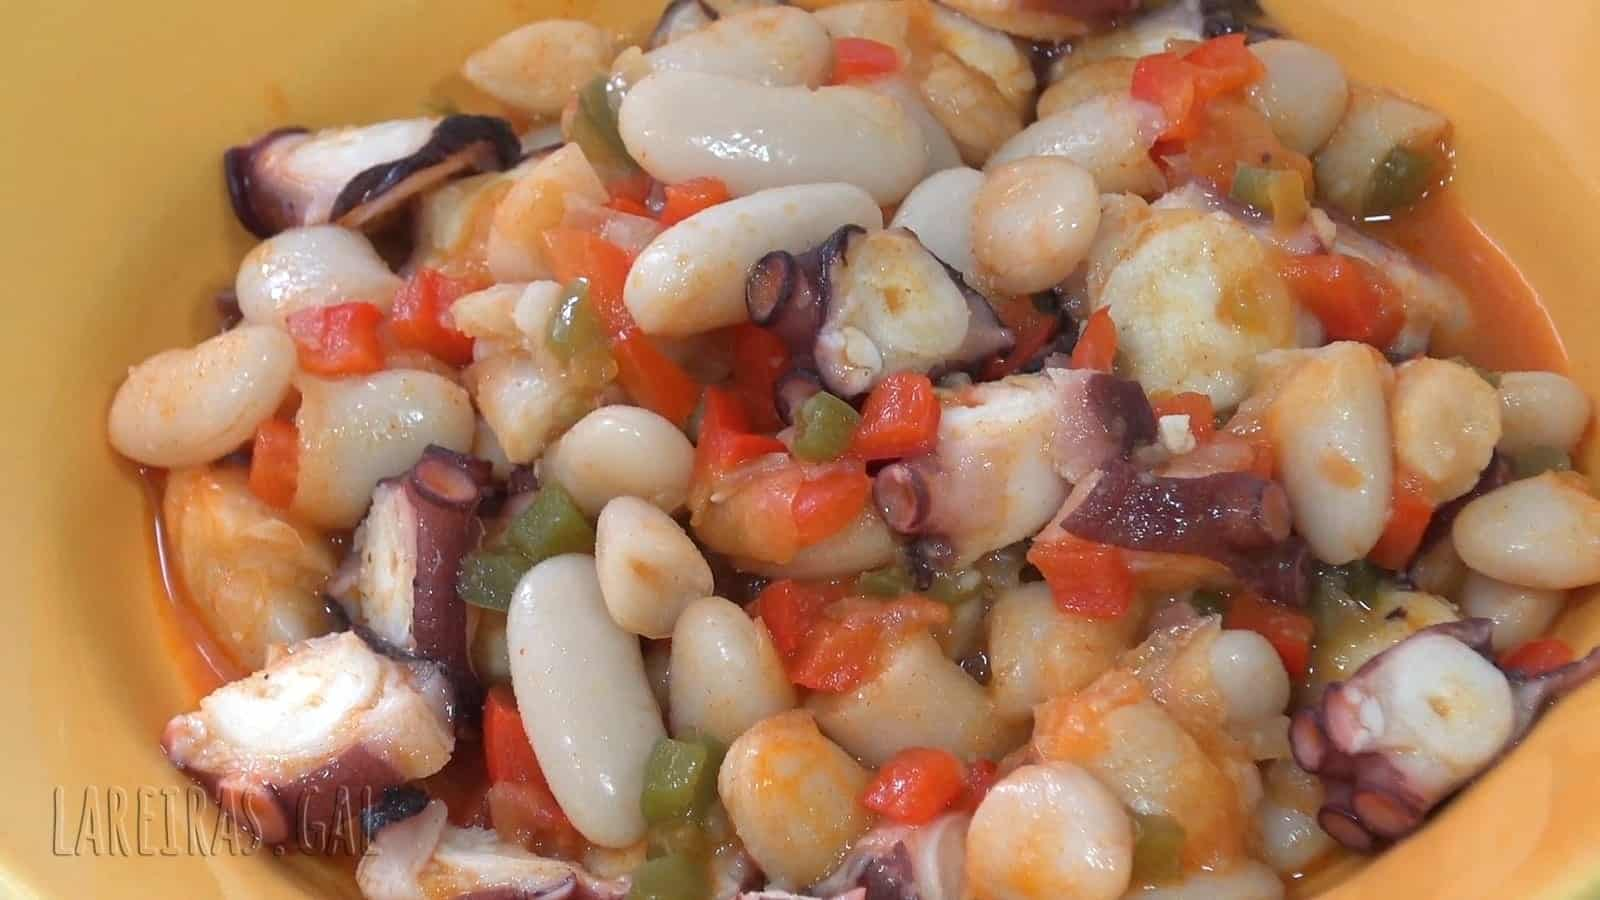 Beans with octopus